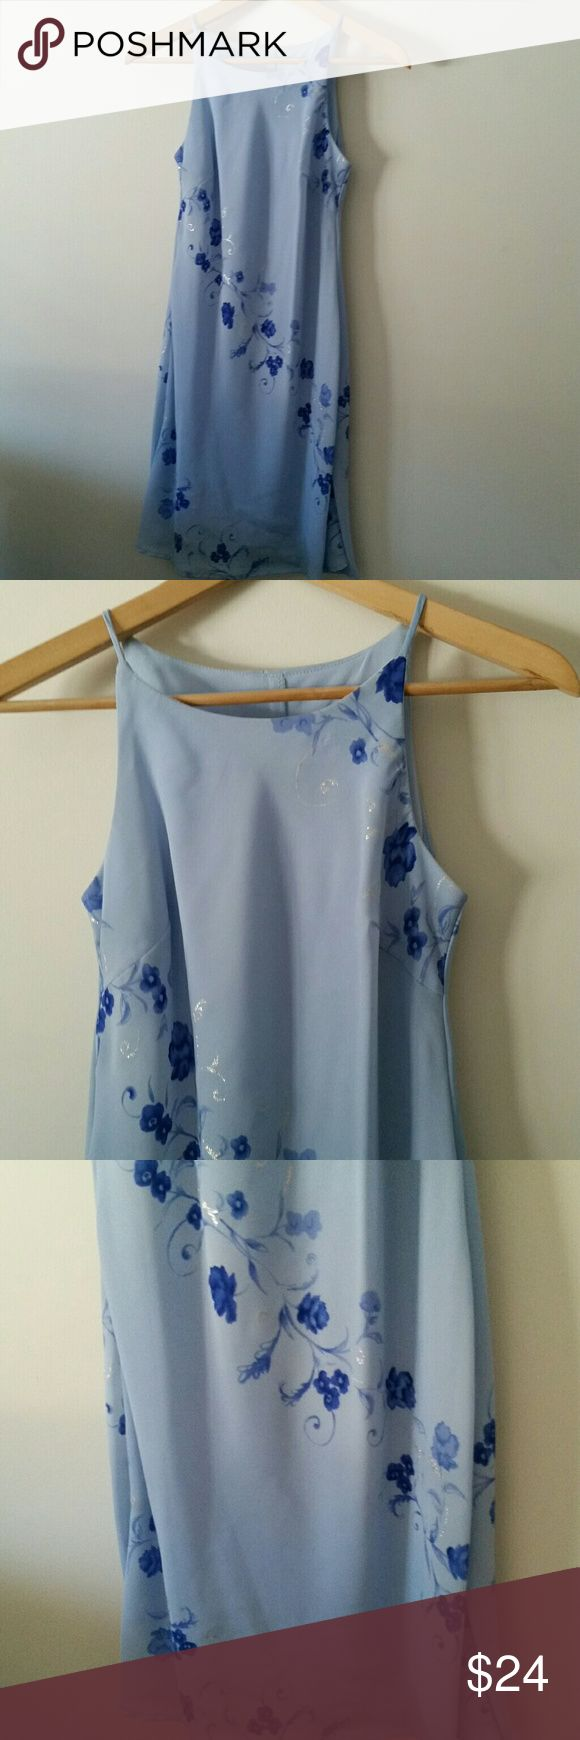 Light Blue Floral Dress Size 3/4 EUC Pretty light blue floral dress, with sparkly silver design. Fully lined. Size 3/4. Steppin Out brand. Excellent condition! Steppin' Out Dresses